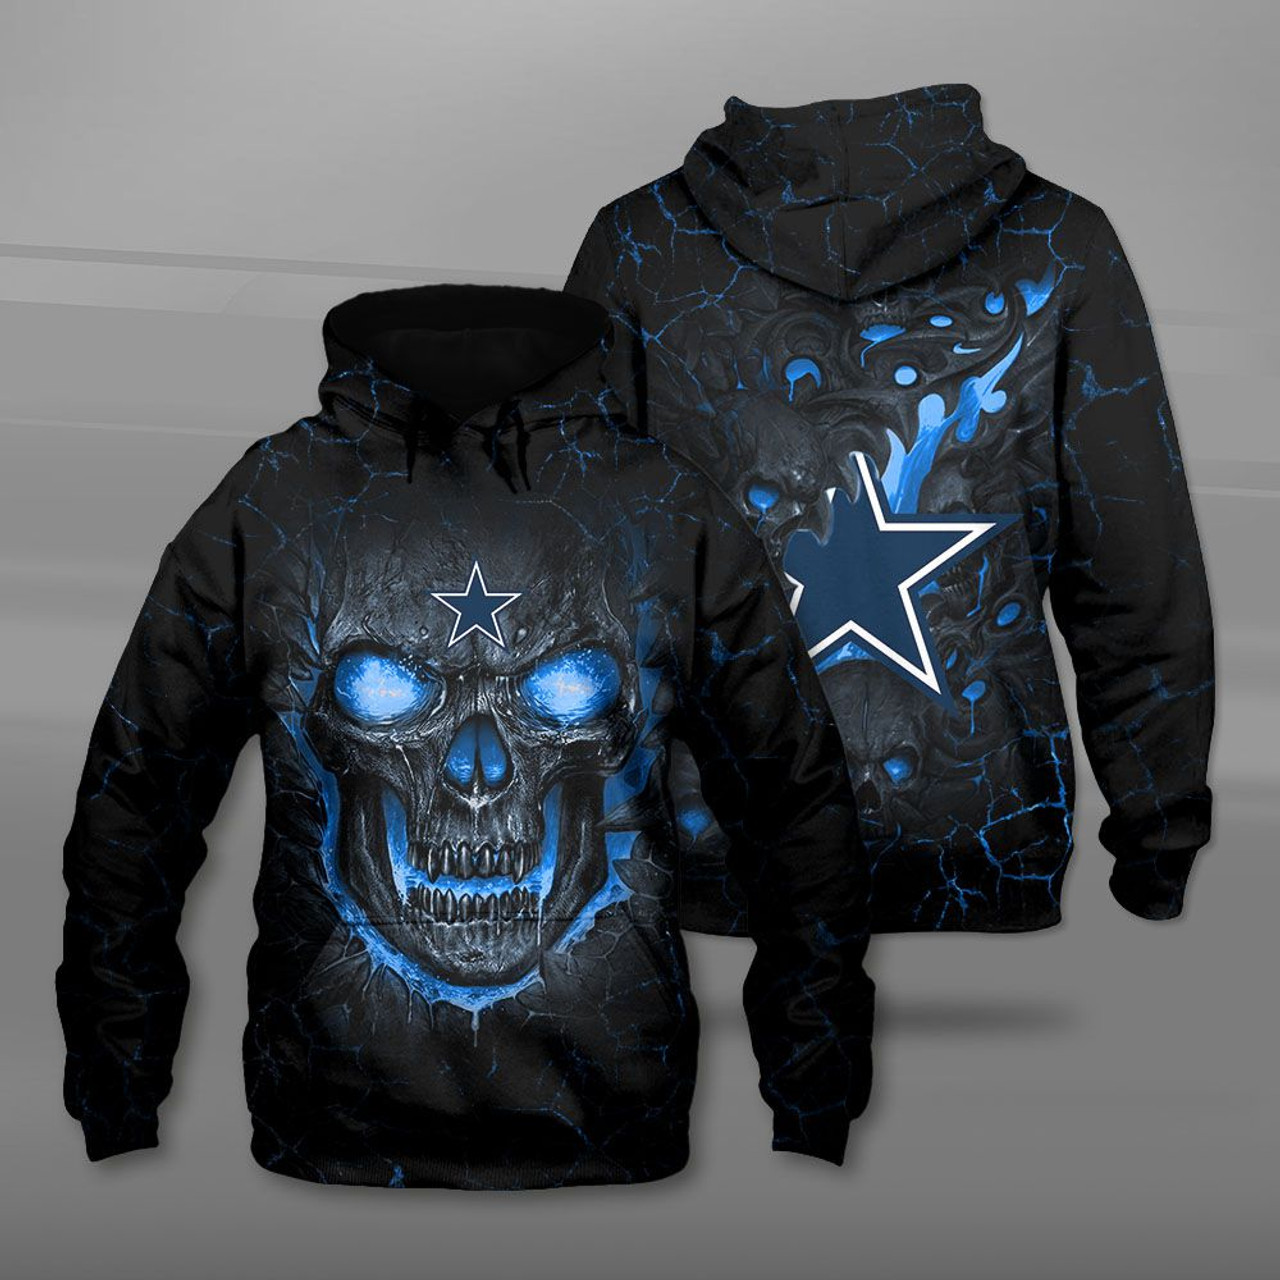 **(OFFICIAL-N.F.L.DALLAS-COWBOYS-TEAM-PULLOVER-HOODIES/CUSTOM-3D-COWBOYS-OFFICIAL-LOGOS & OFFICIAL-CLASSIC-COWBOYS-TEAM-COLORS/DETAILED-3D-GRAPHIC-PRINTED-DOUBLE-SIDED-DESIGN/PREMIUM-N.F.L.COWBOYS & BIG-FIREY-SKULL-THEMED-PULLOVER-HOODIES)**